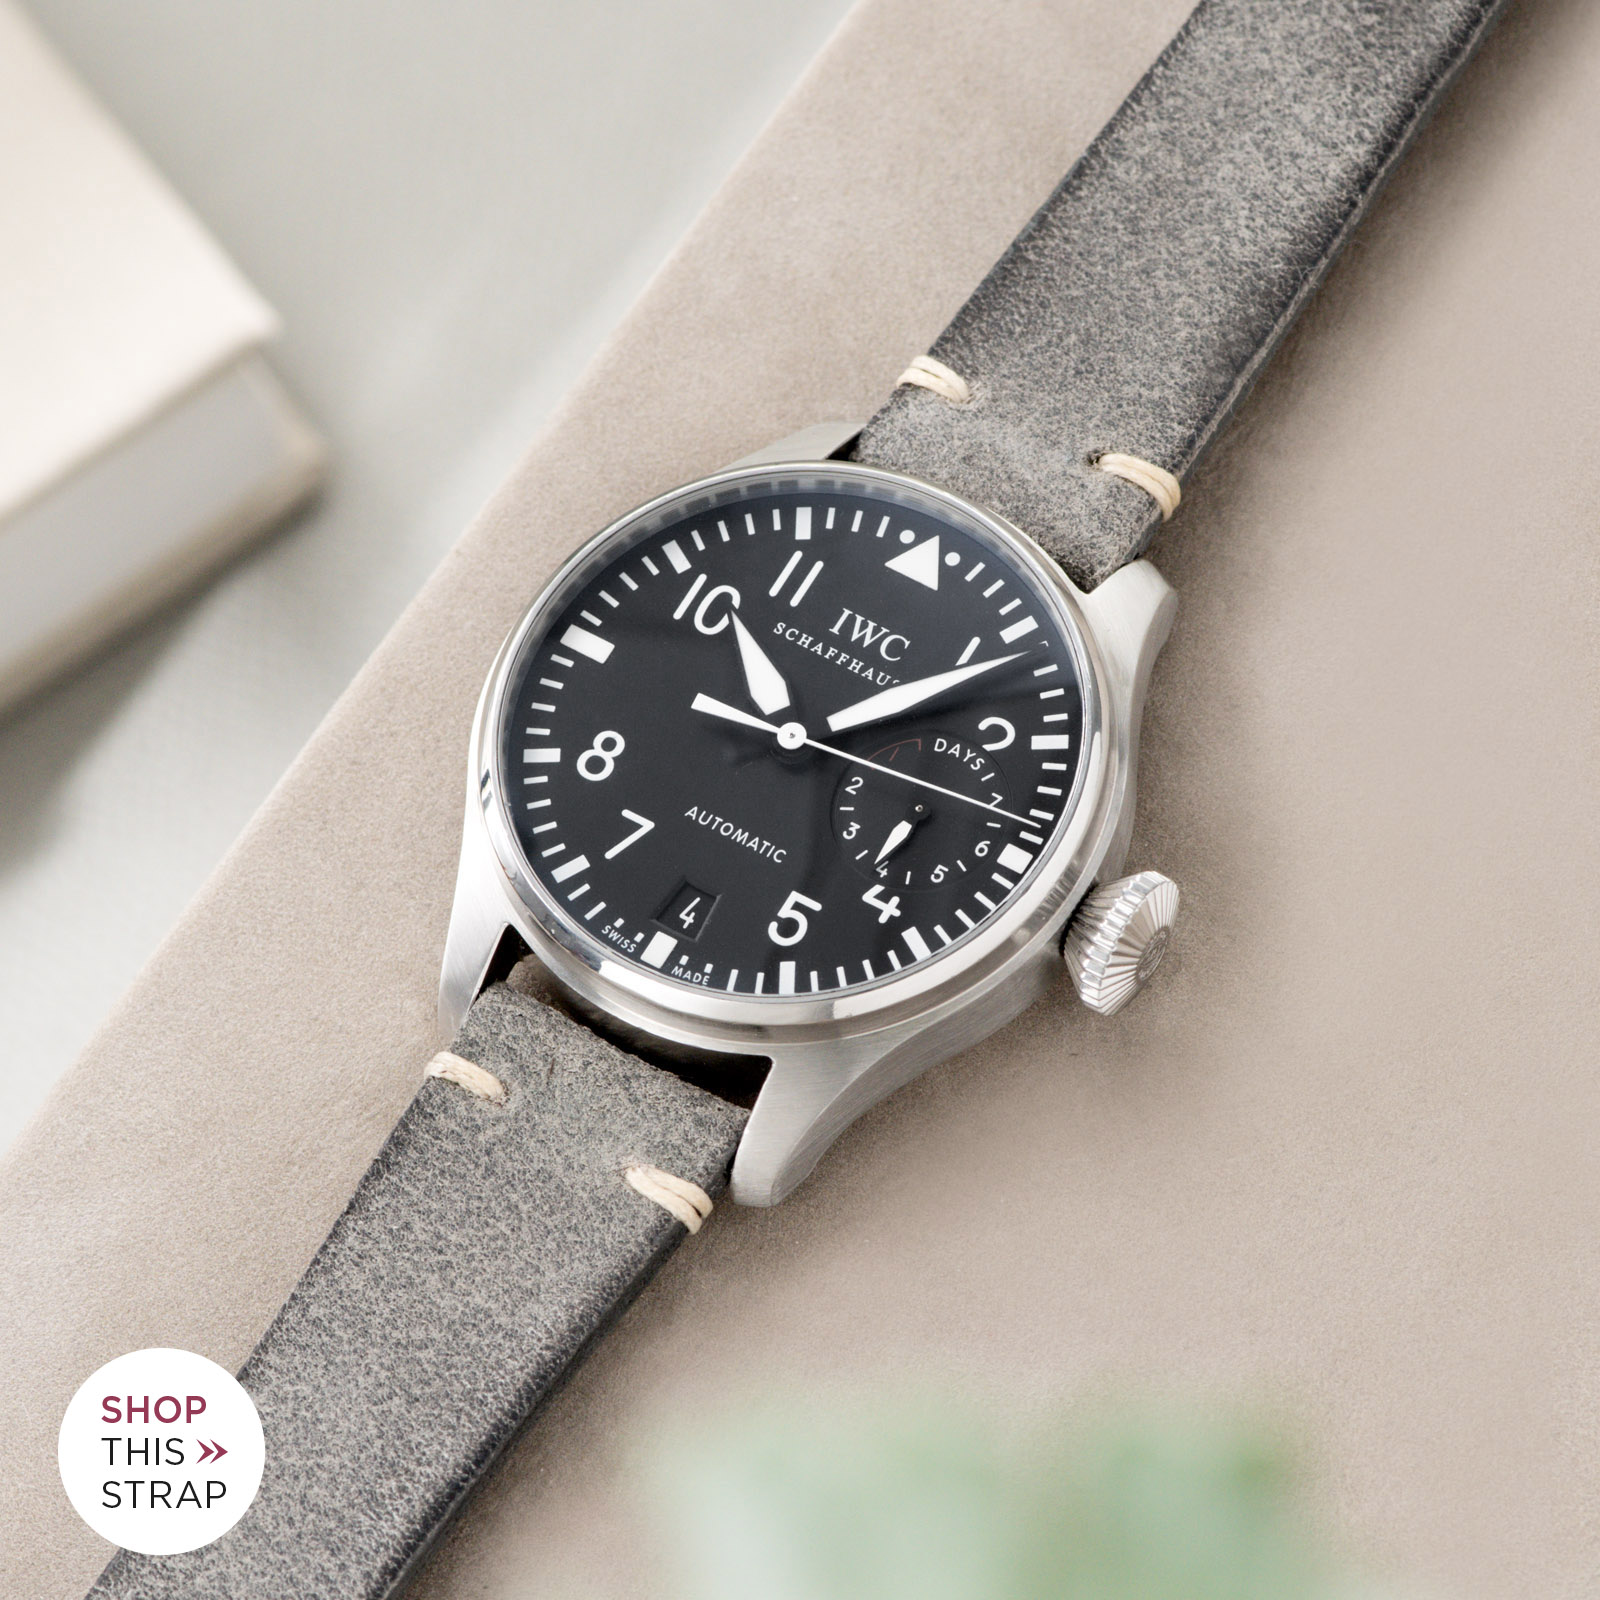 Bulang and Sons_Strap Guide_IWC Big Pilot ref IW5004_Rugged Grey Leather Watch Strap